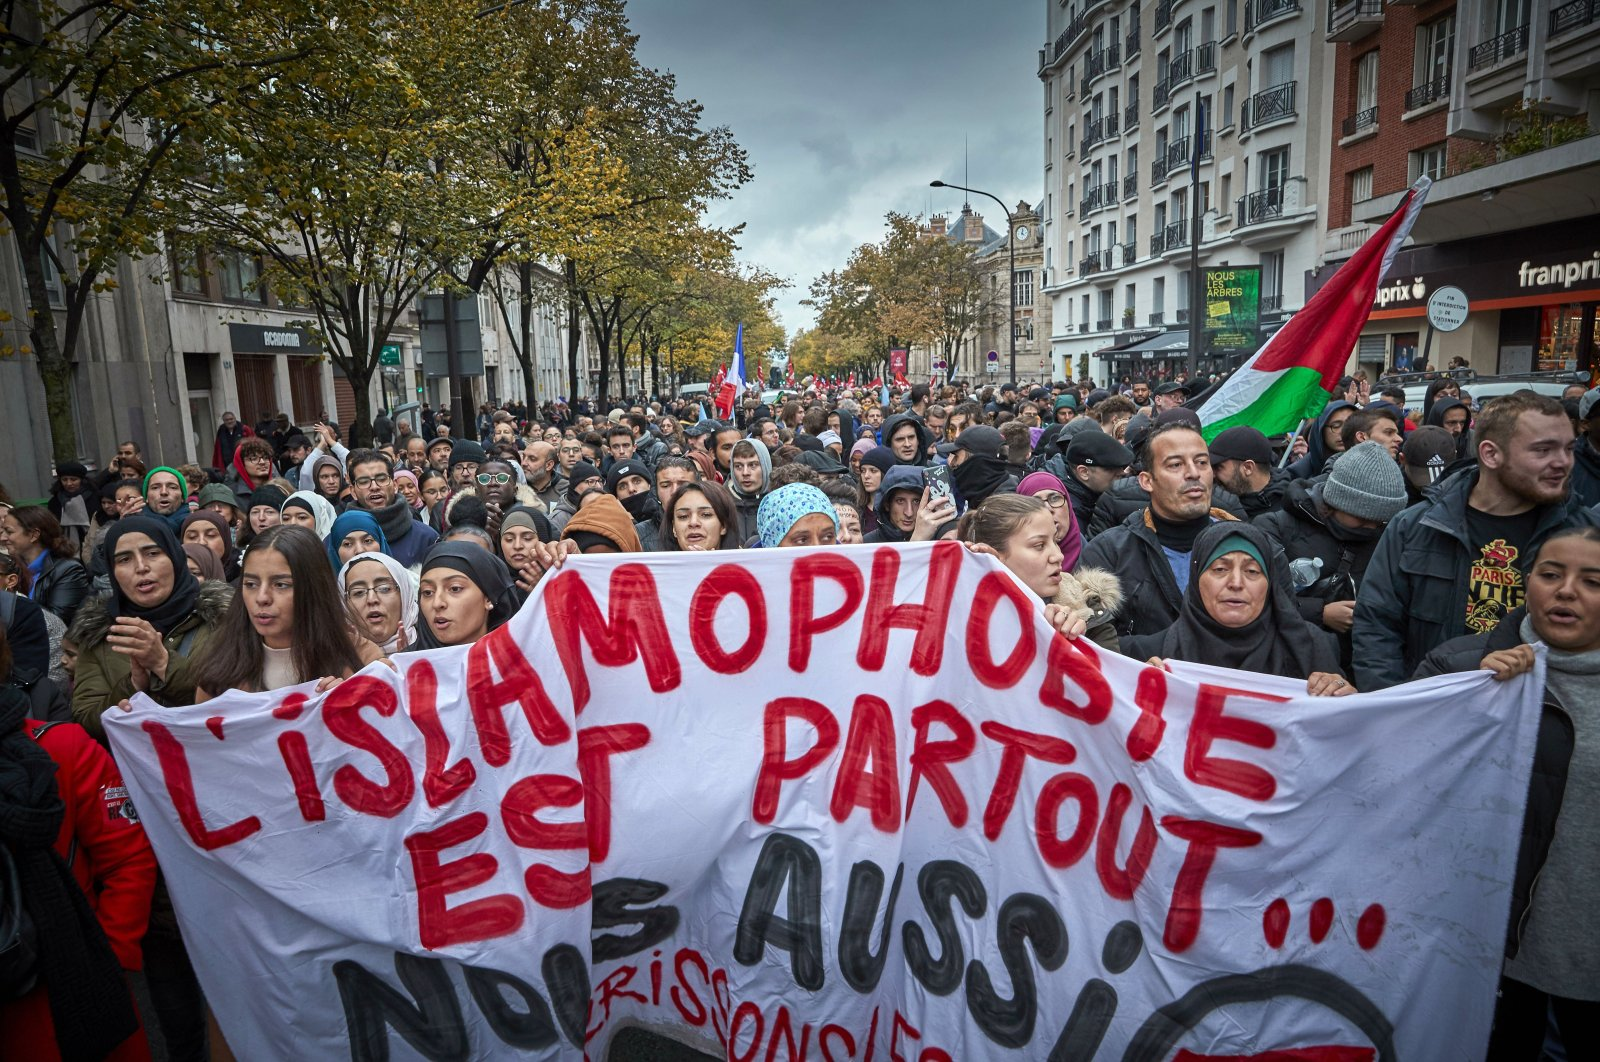 Thousands take to the streets of Paris in an anti-Islamophobia rally in Paris, France, Nov. 10, 2019. (Getty Images File Photo)